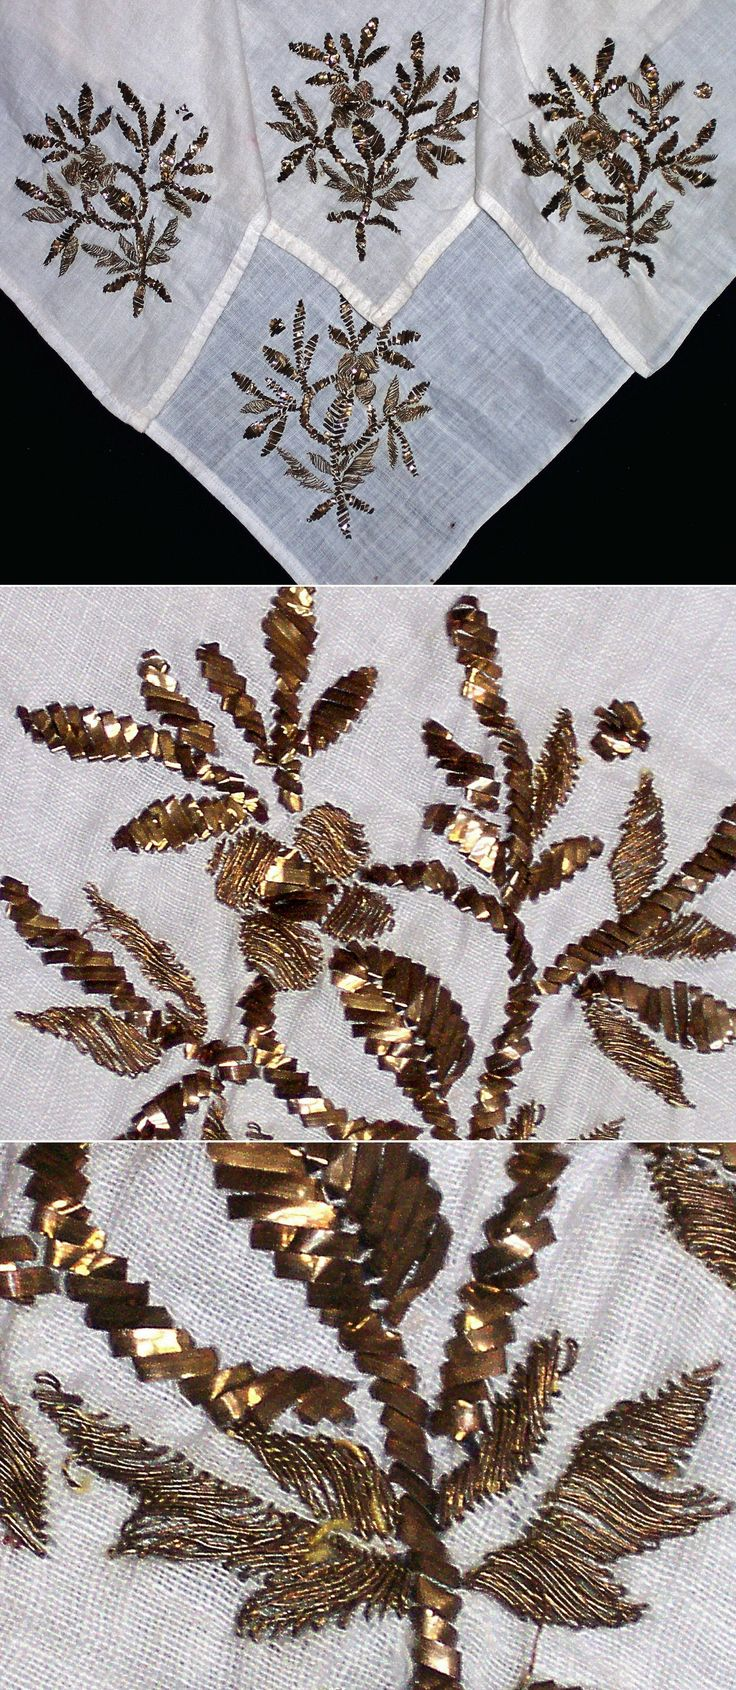 An embroidered 'çevre' (square kerchief; a decorative accessory).  From Trakya or the Marmara region, ca. 1925-1950.  Two embroidery techniques used: metal thread & 'tel kırma' (motives obtained by sticking narrow metallic strips through the fabric and folding them). Both techniques are 'two-sided' (the result identical on both sides of the fabric).  (Inv.nr. brdw024 - Kavak Costume Collection - Antwerpen/Belgium).